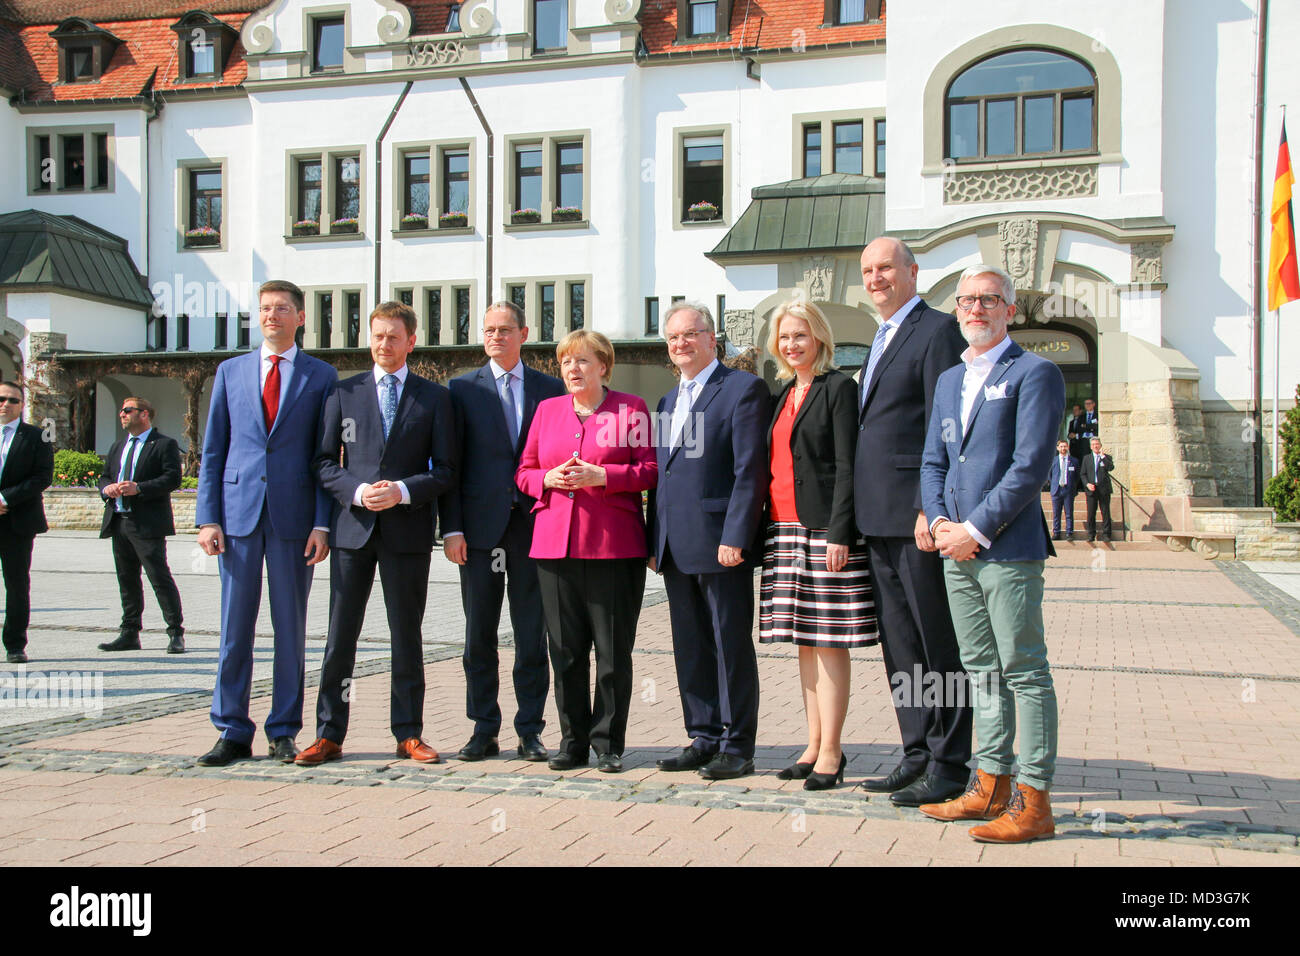 Bad Schmiedeberg, Germany - April 18, 2018: Group photo of the East German Prime Ministers with German Chancellor Angela Merkel in Bad Schmiedeberg, Saxony-Anhalt. Credit: Mattis Kaminer/Alamy Live News - Stock Image